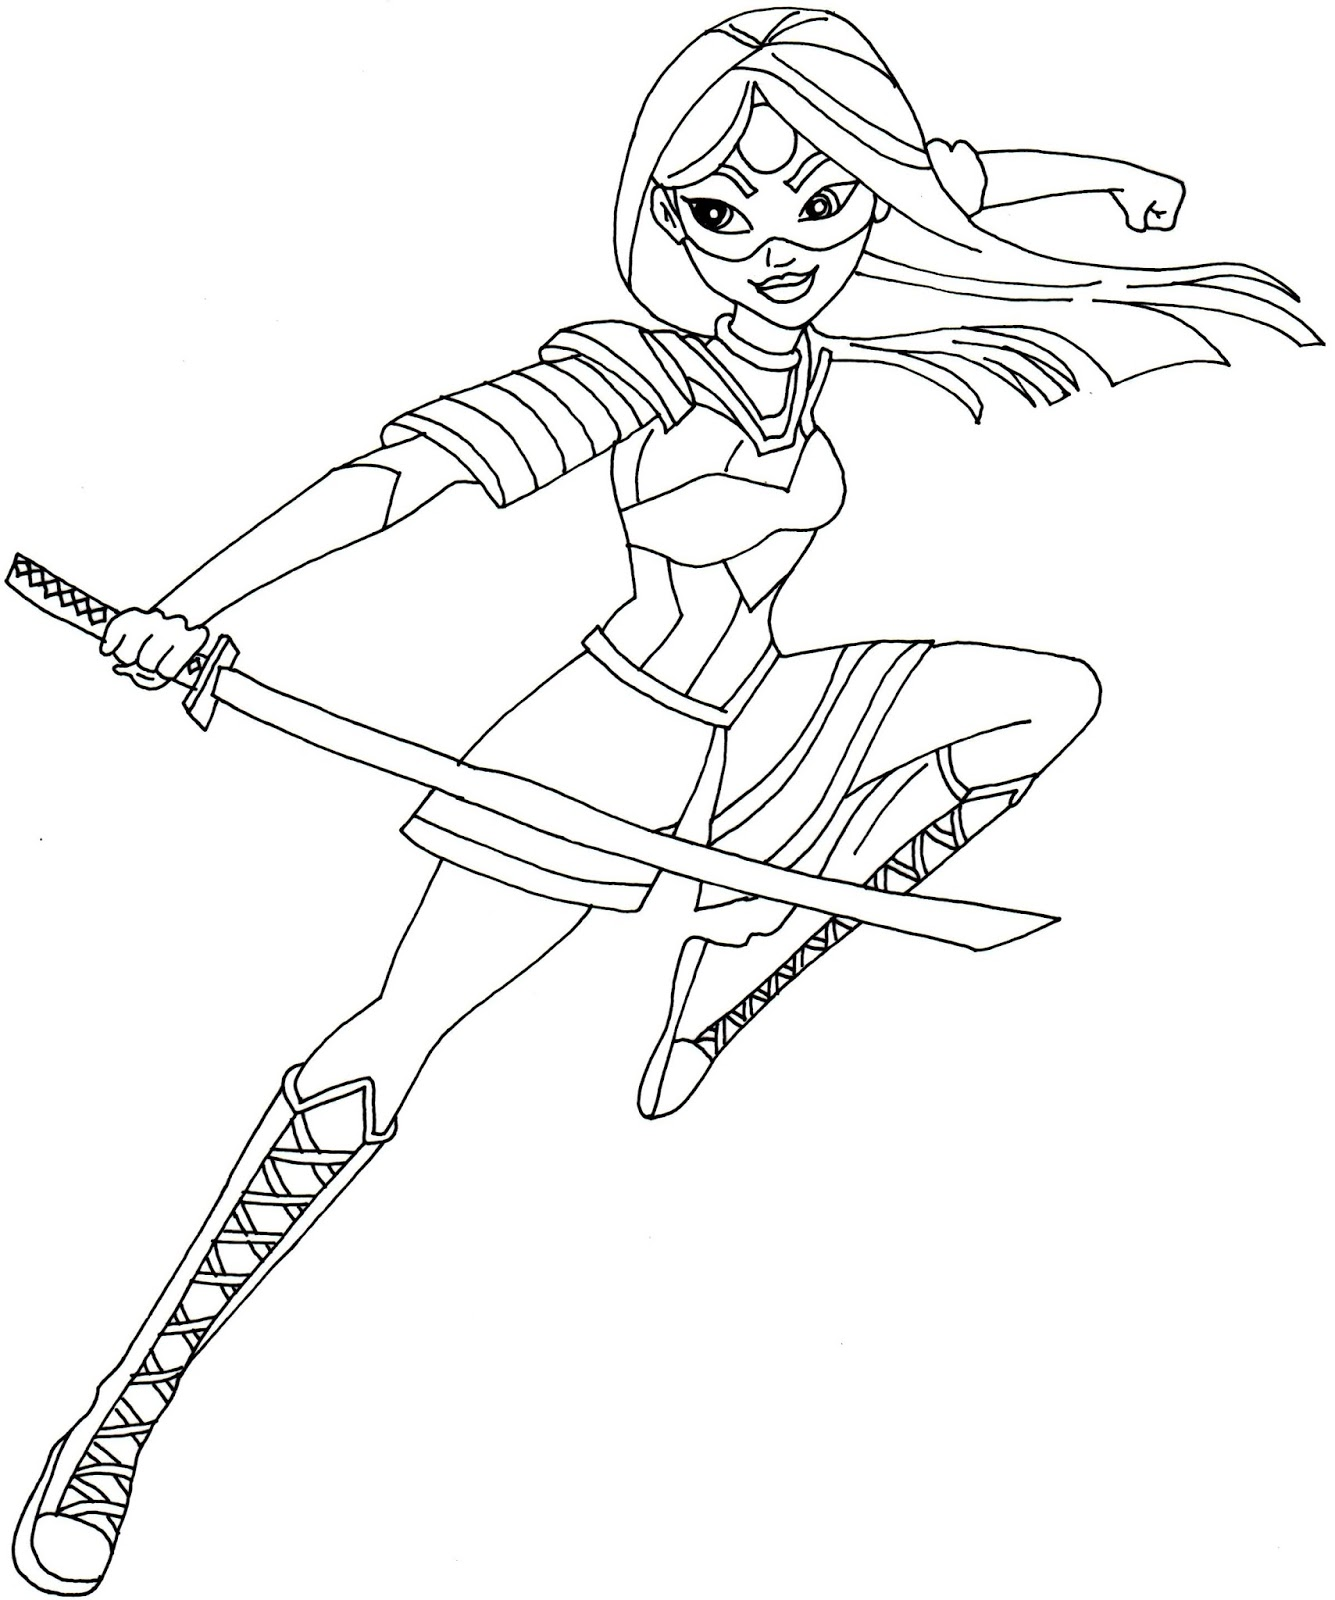 dc superhero coloring pages - free printable super hero high coloring pages katana